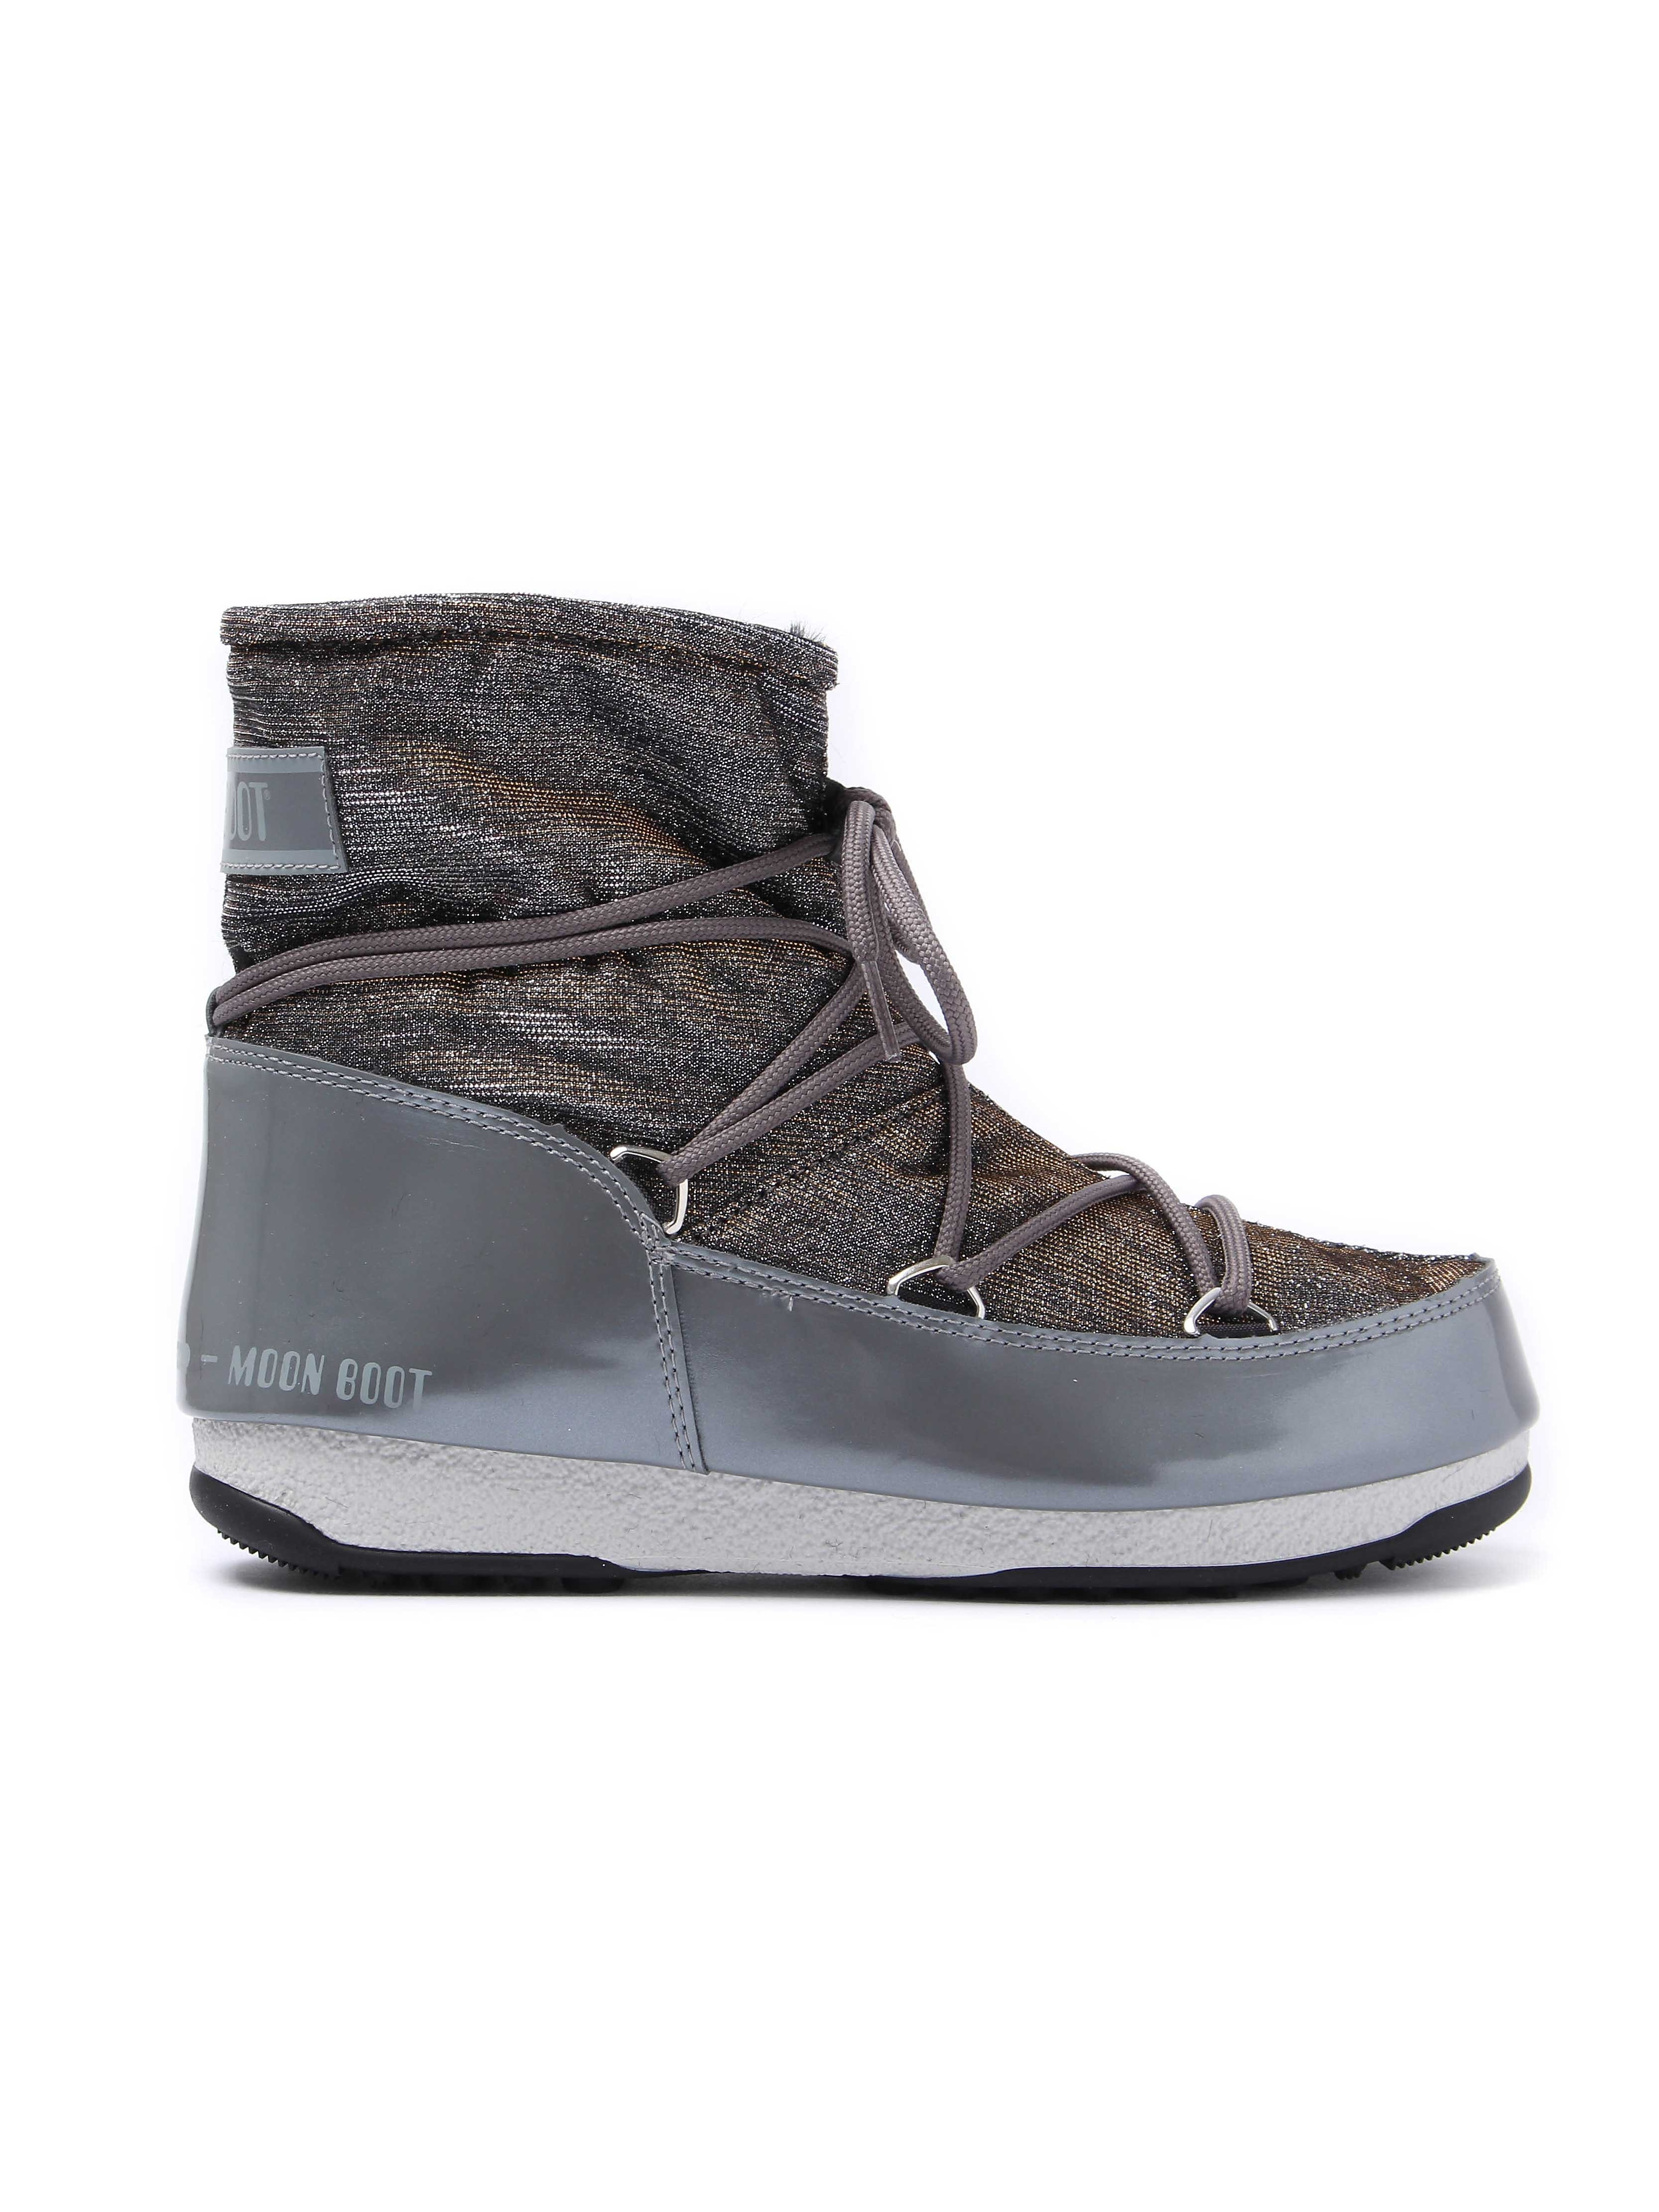 Moon Boots WE Low Lurex Boots - Grey/ Silver